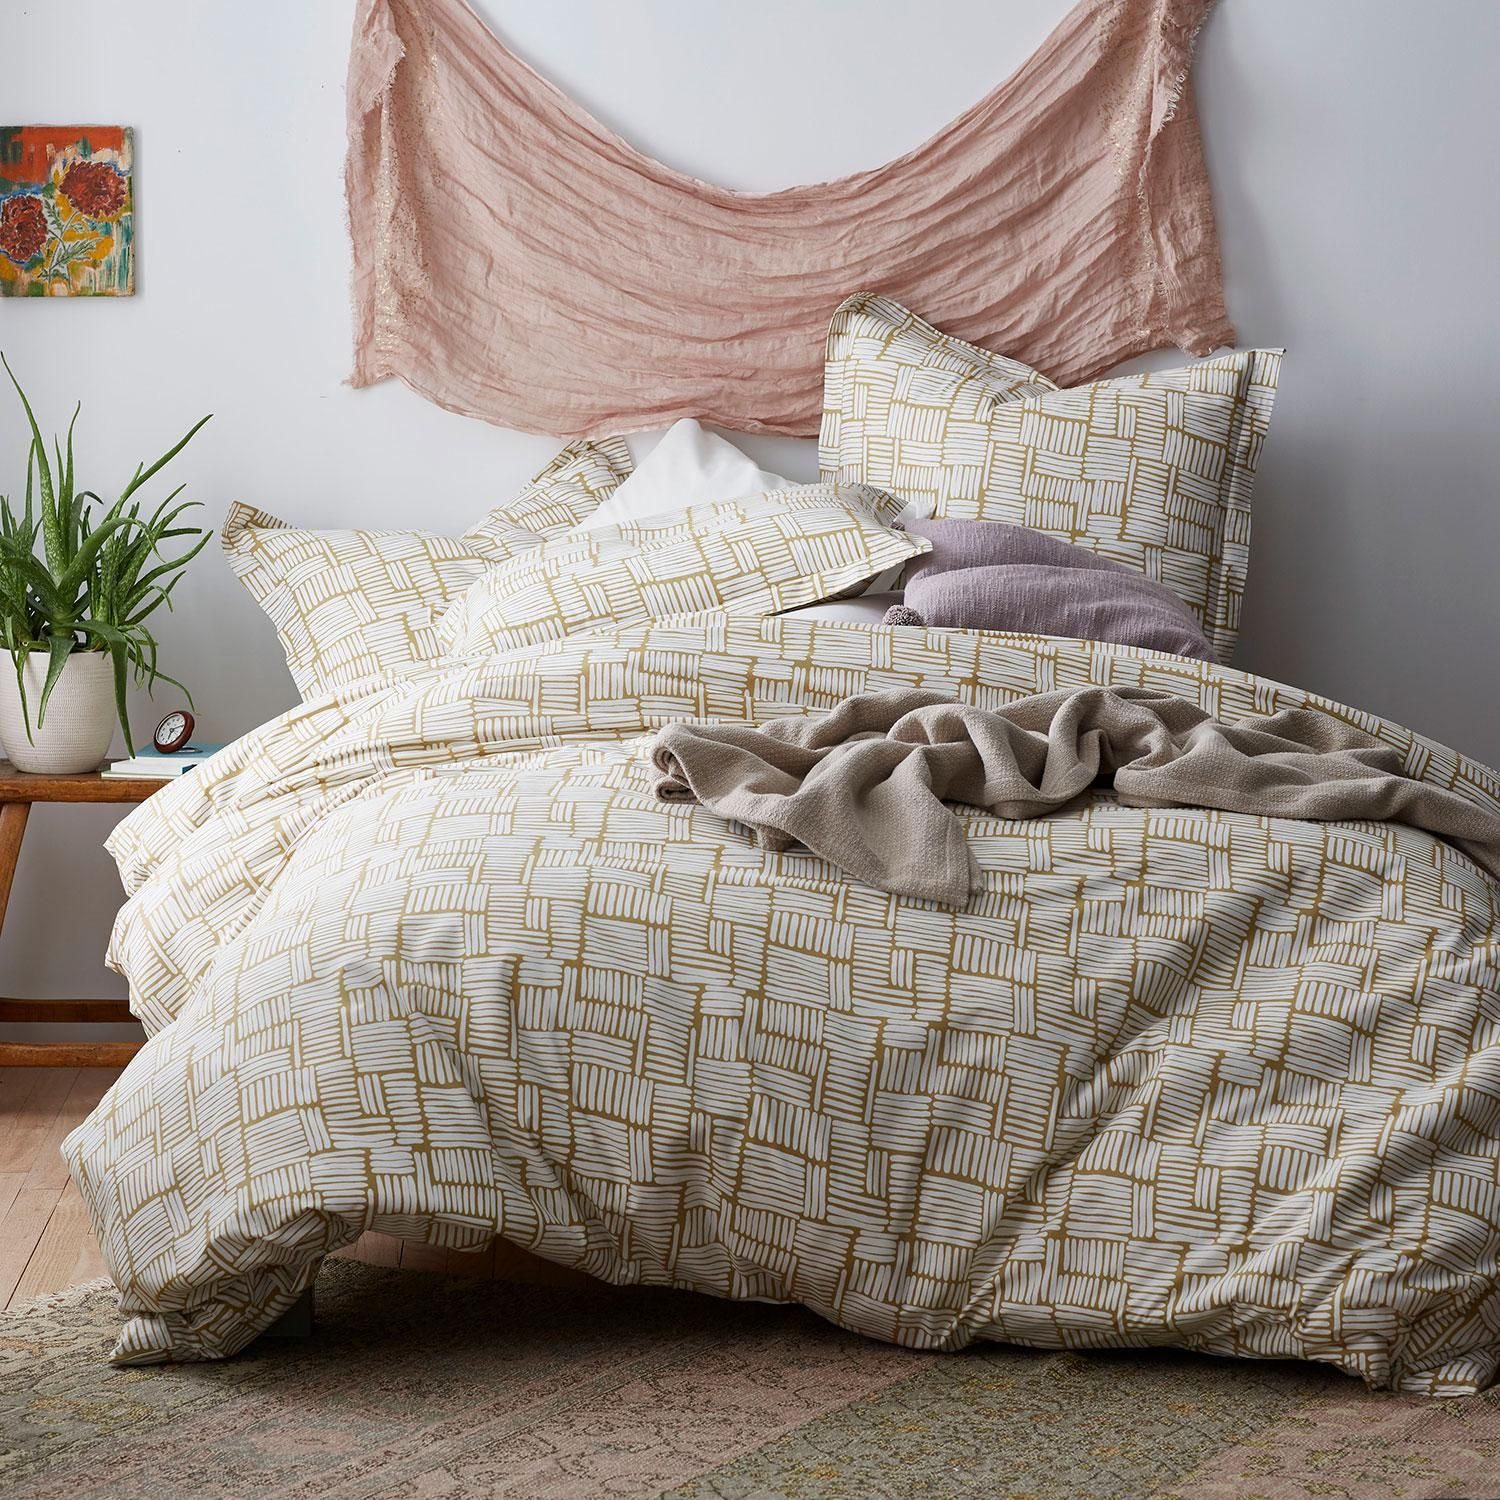 Cstudio Home Ticking Marks Organic Cotton Percale Duvet Cover Set